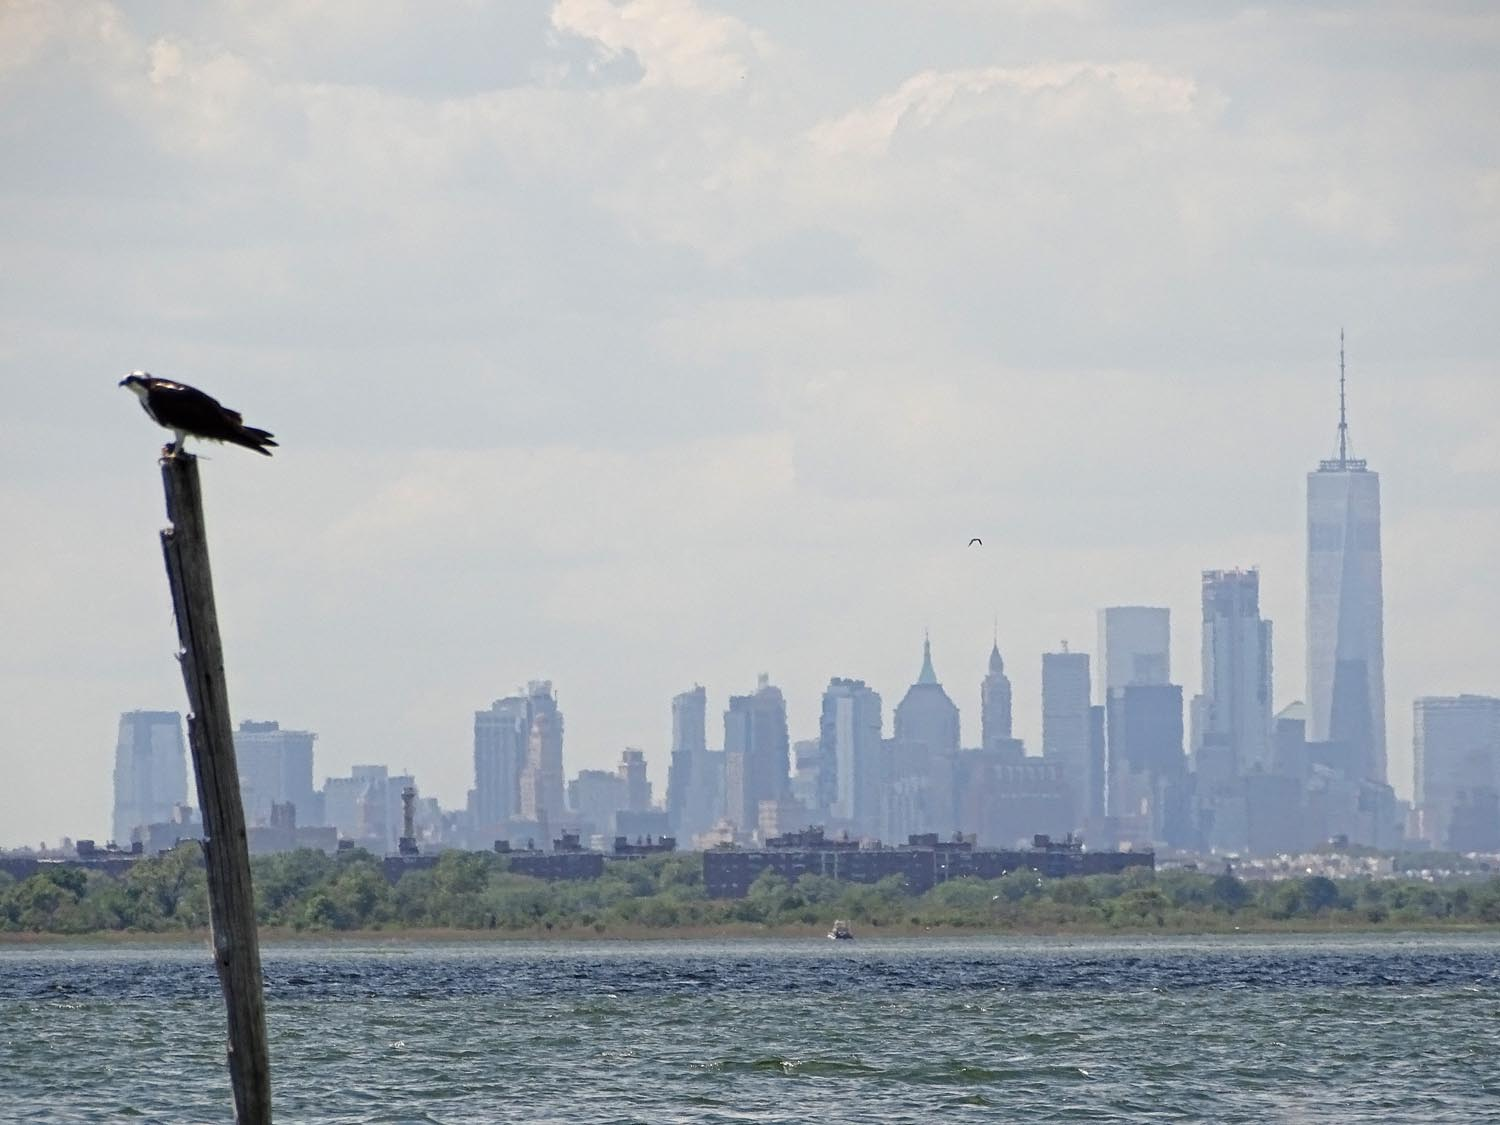 At Broad Channel Park, the osprey nest has a magnificent backdrop!